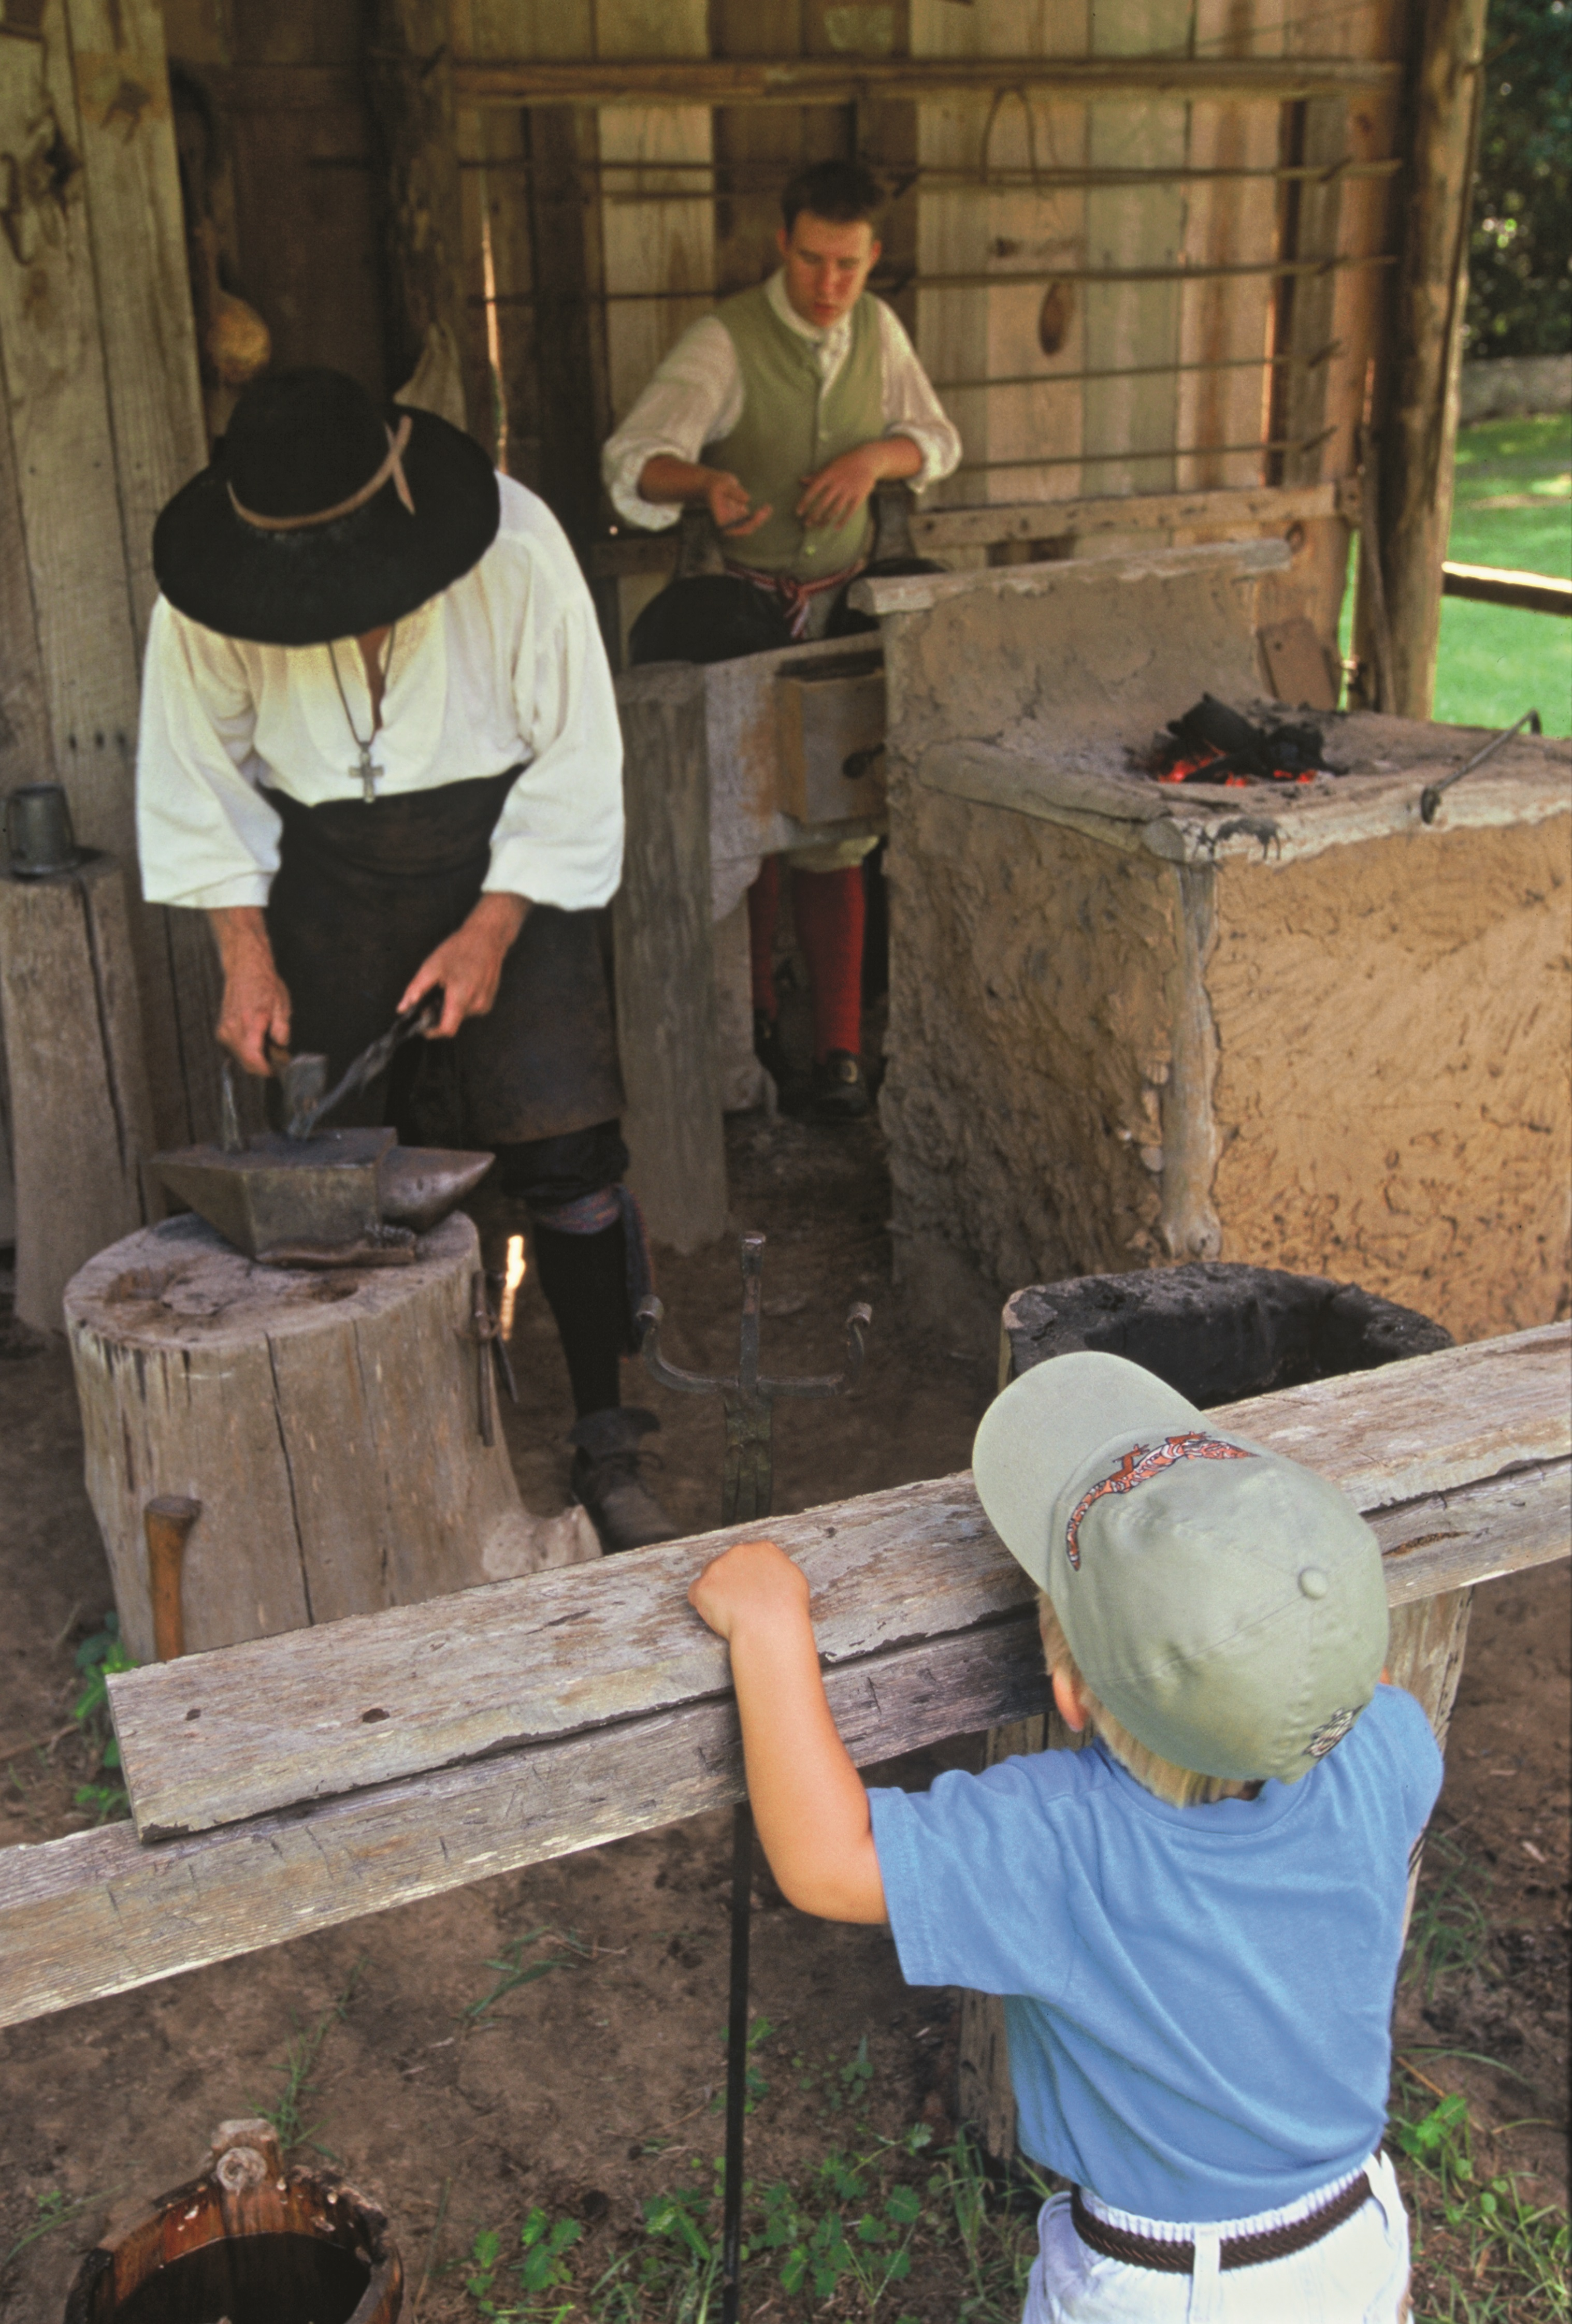 A young boy watches blacksmiths working at a forge at Mission San Luis in Leon County, Florida. The Mission was awarded a Preserve America Presidential Award for heritage tourism in 2006.